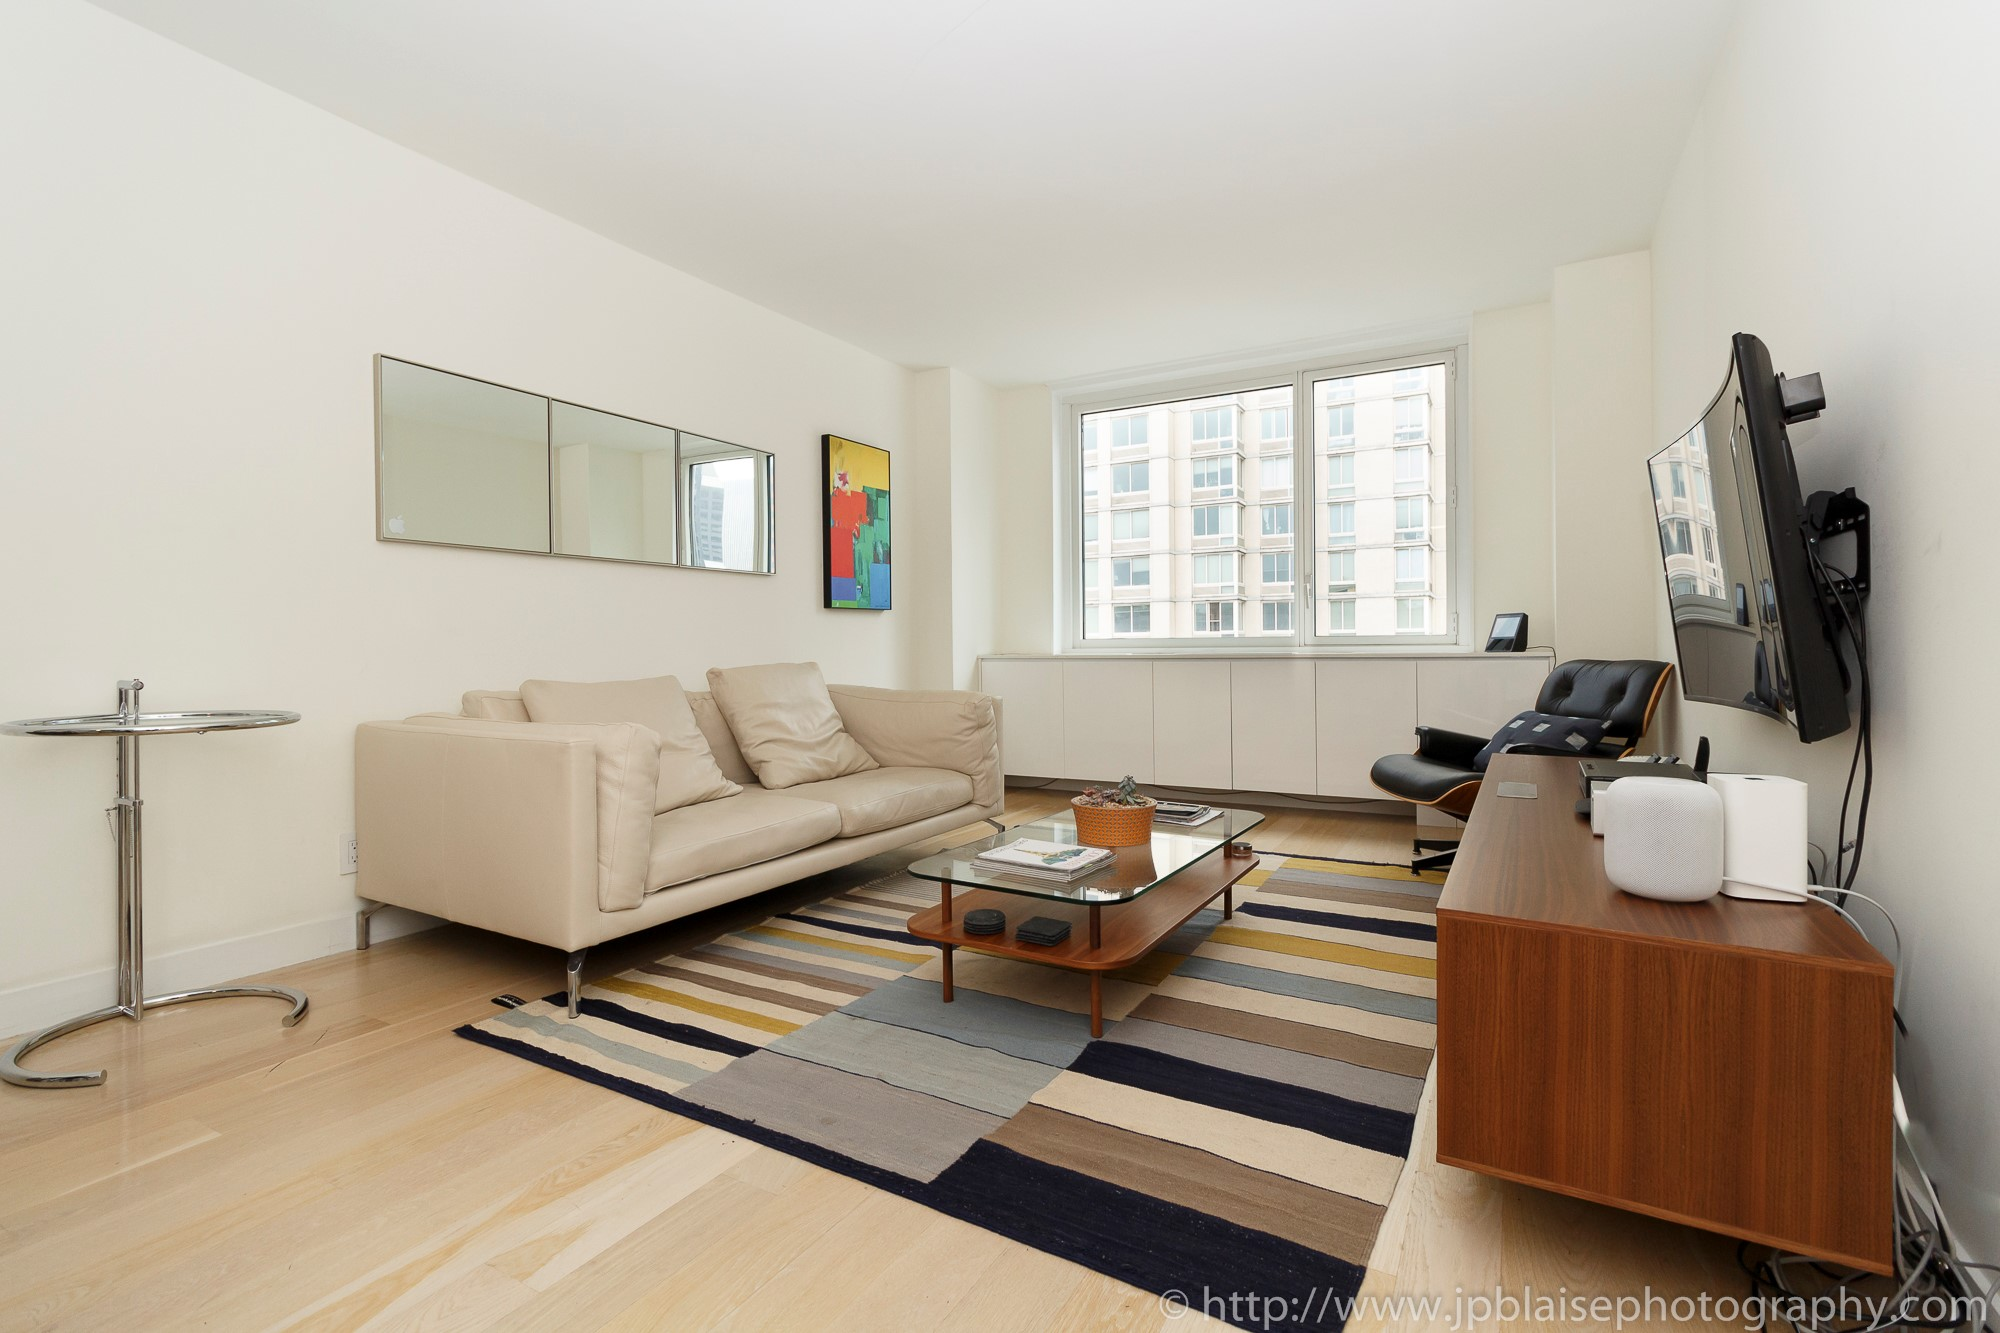 New york city apartment photographer ny nyc real estate interior photography midtown west living room